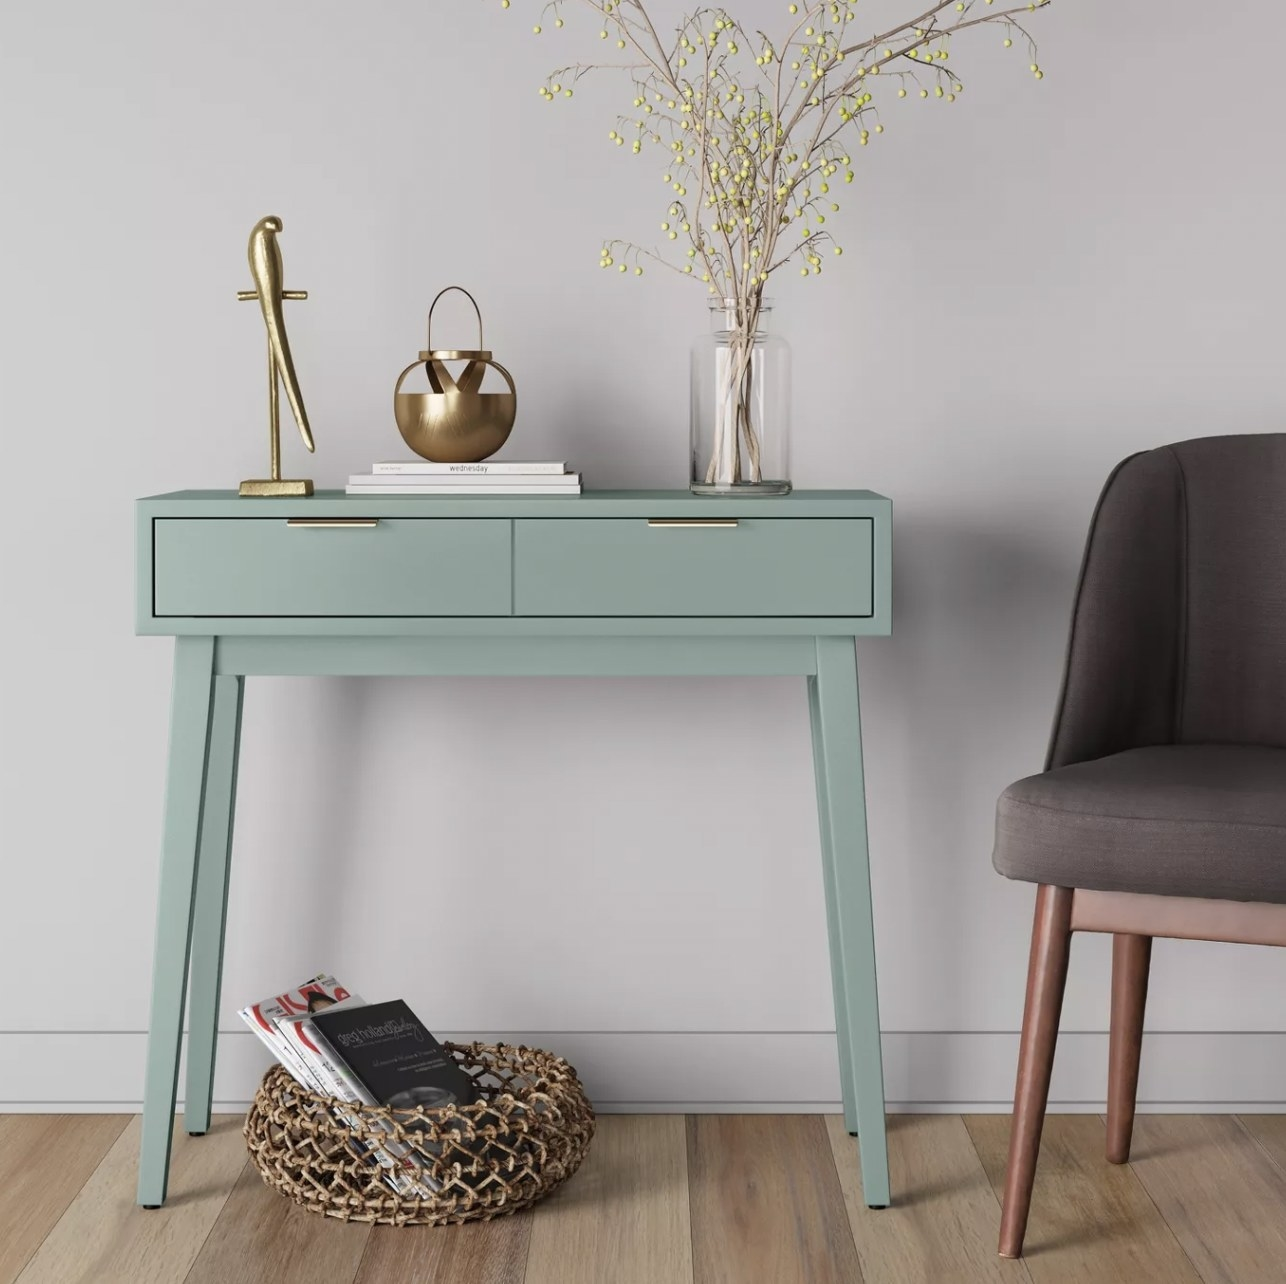 a mint green table with two drawers